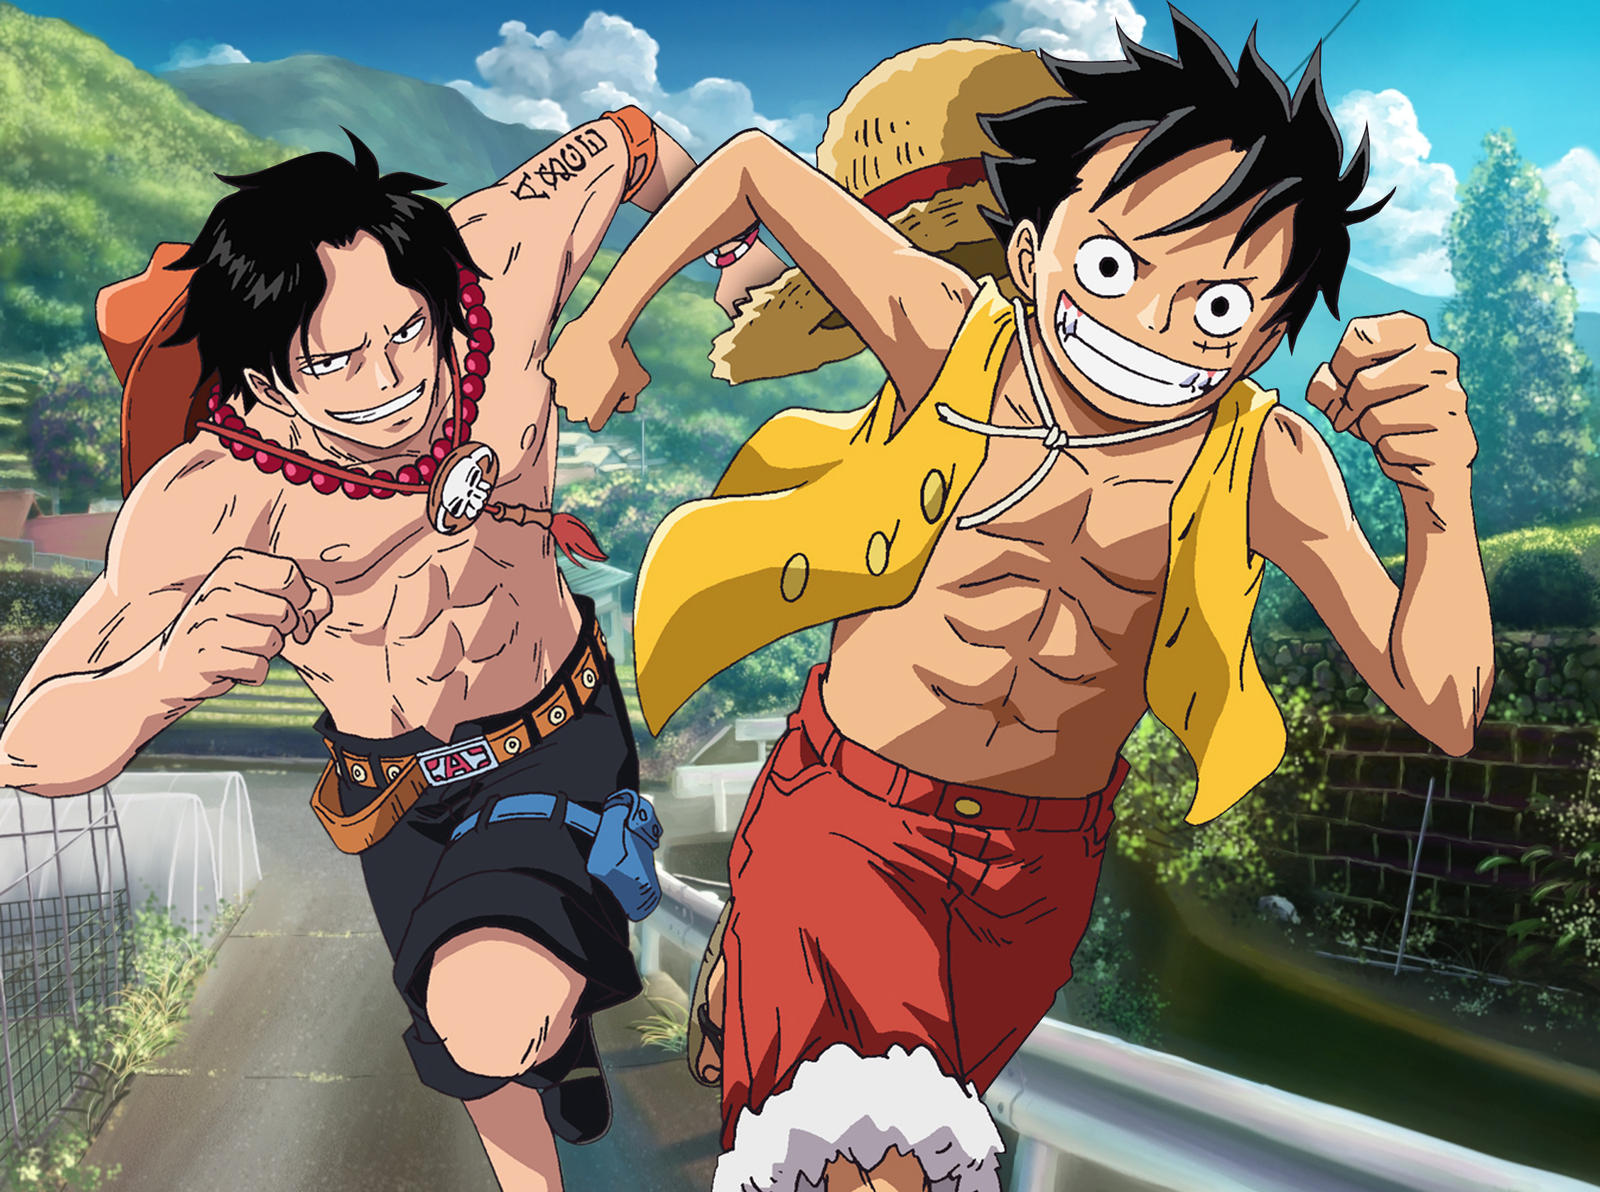 ace and luffy fighting wallpaper - photo #29